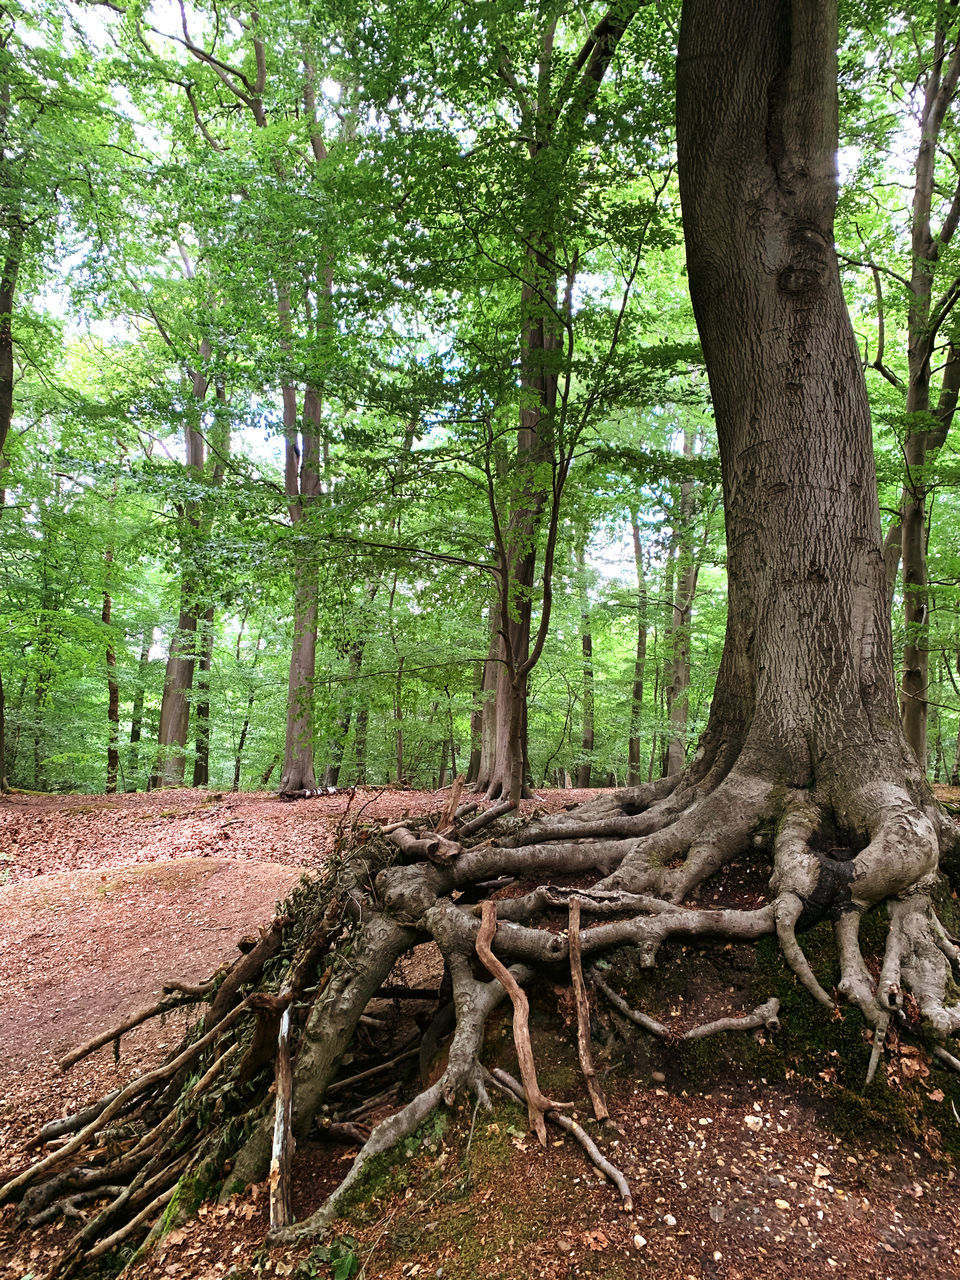 VIEW OF TREE ROOTS IN FOREST